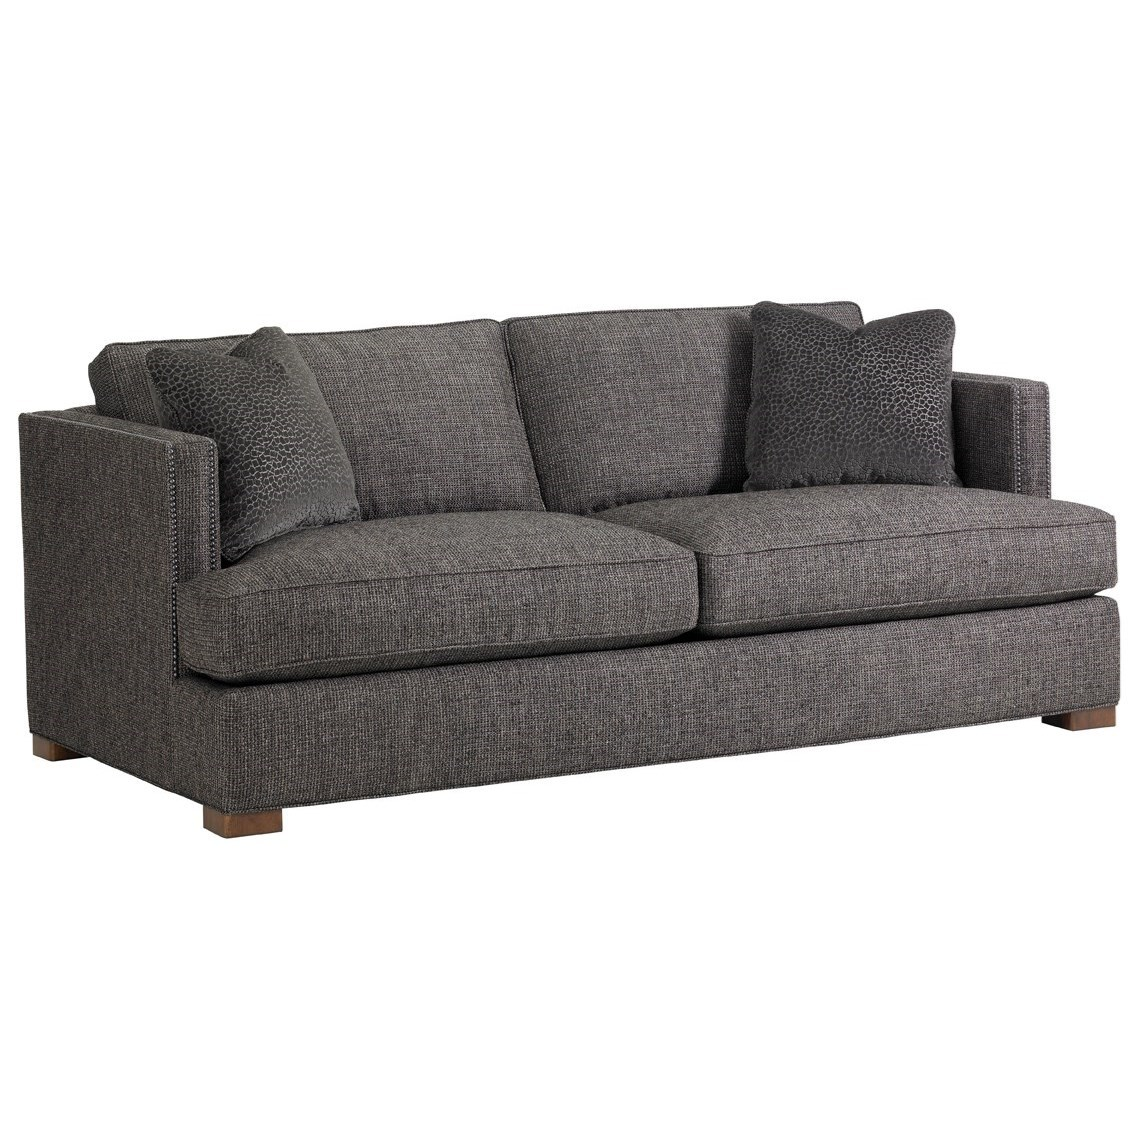 Upholstery Fillmore Sofa by Lexington at Baer's Furniture